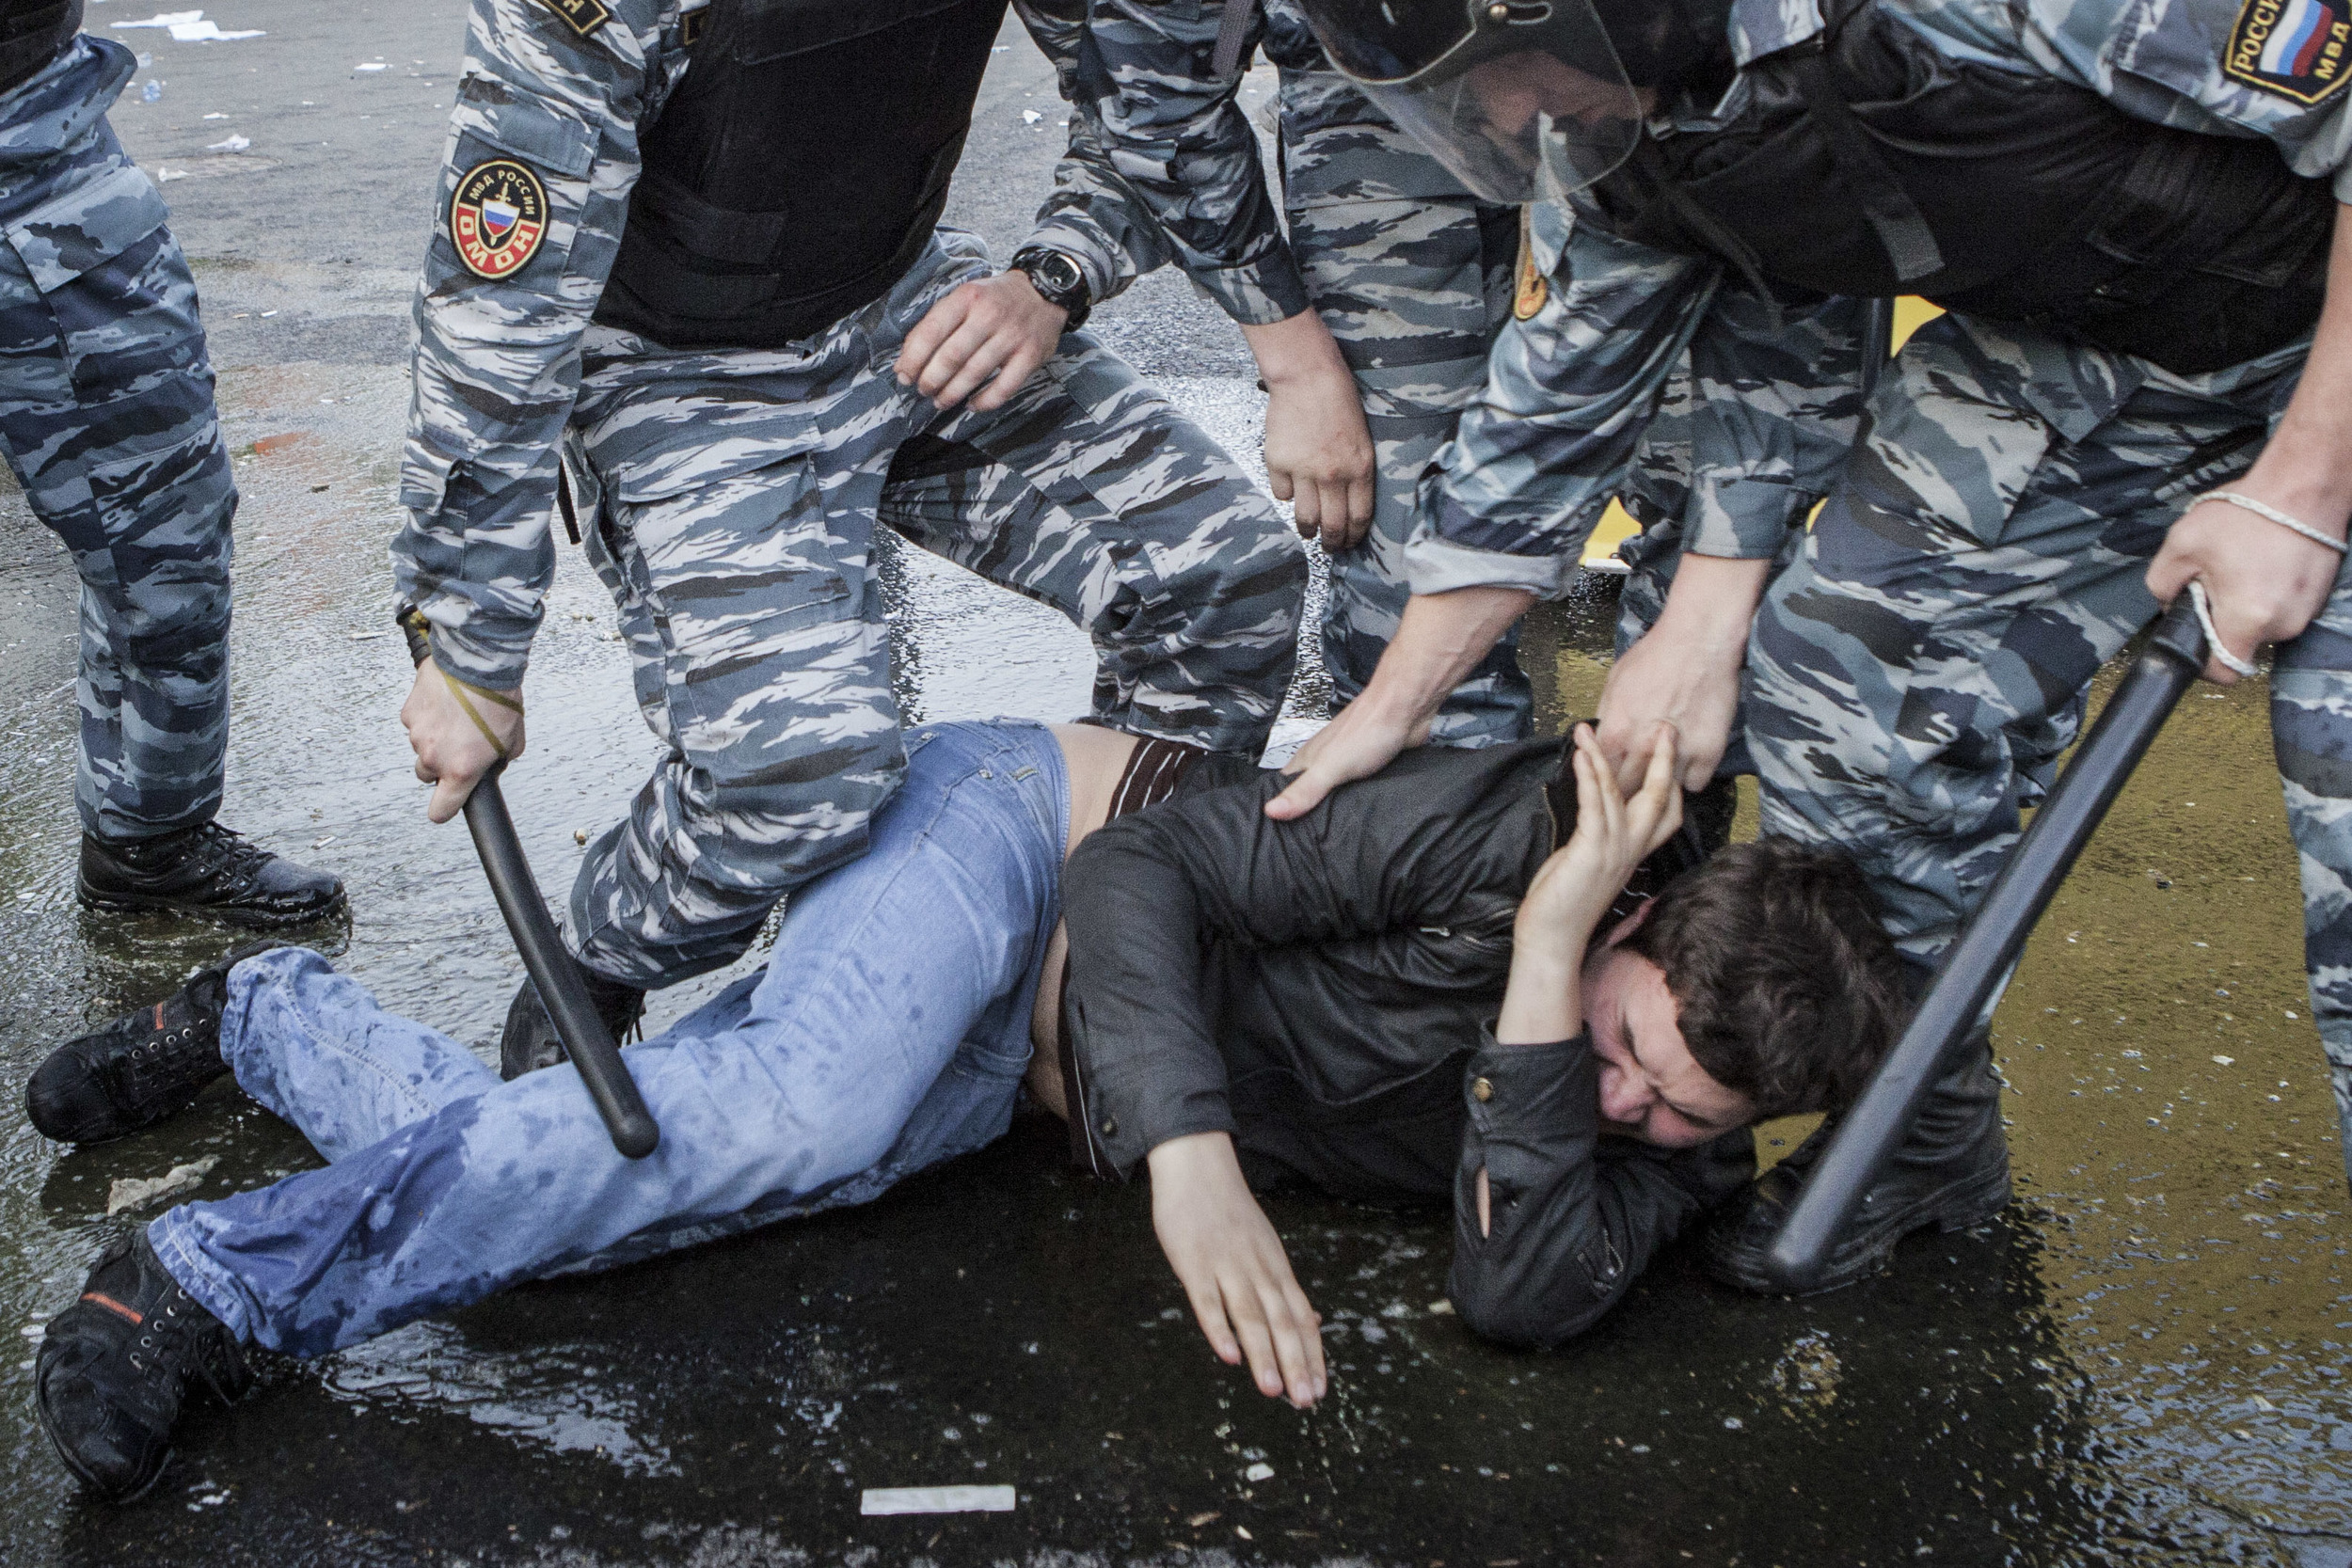 Riot Police detain and beat an activist after the protest rally was stopped and turned into riots that were dissolved. Thousands were arrested. May 6 2012